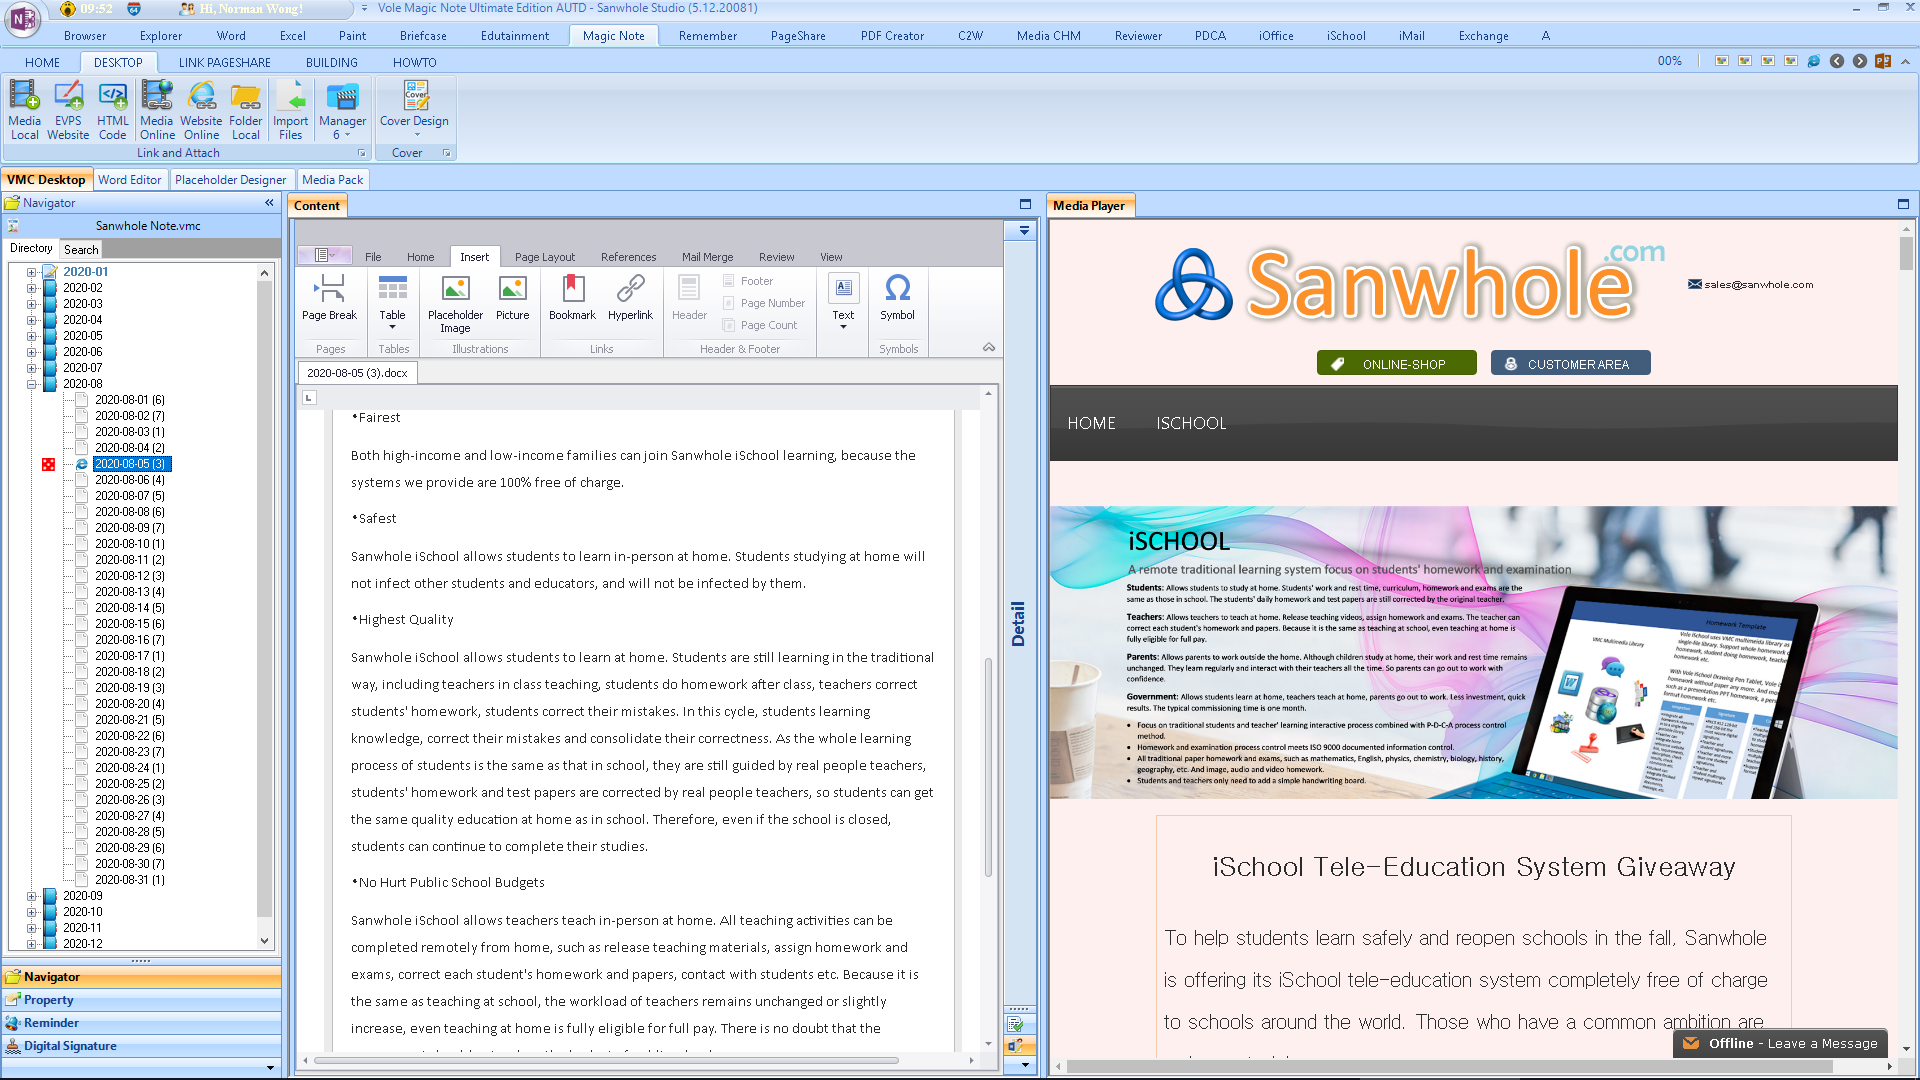 Sanwhole Office Ultimate Edition, Business & Finance Software, Microsoft Office Software Screenshot